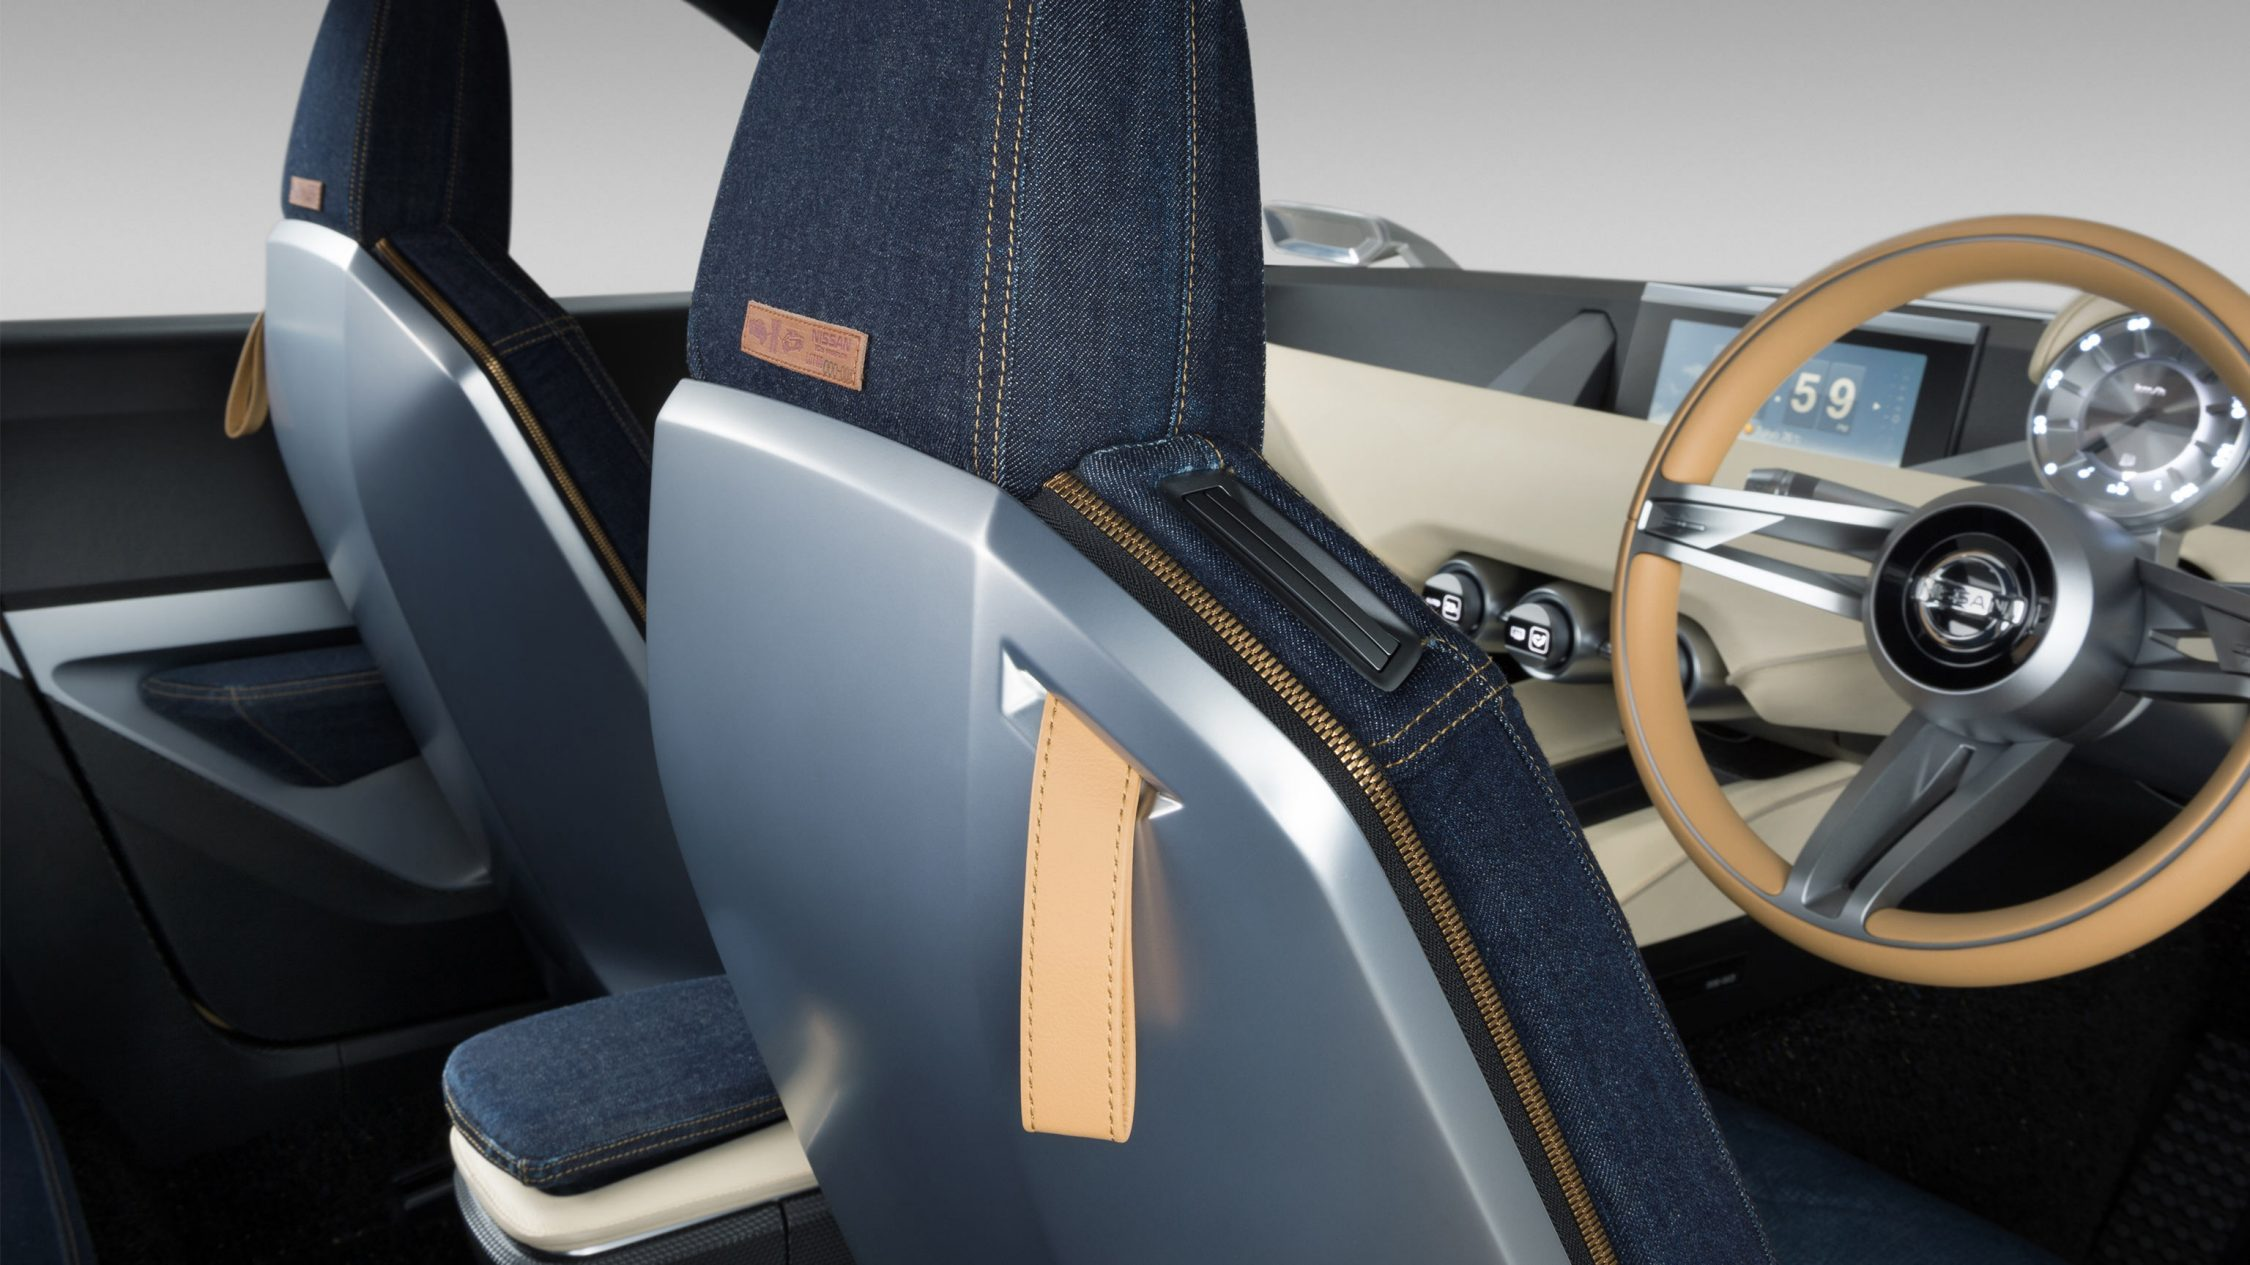 Nissan IDX Freeflow Concept. Gallery seatback detail.